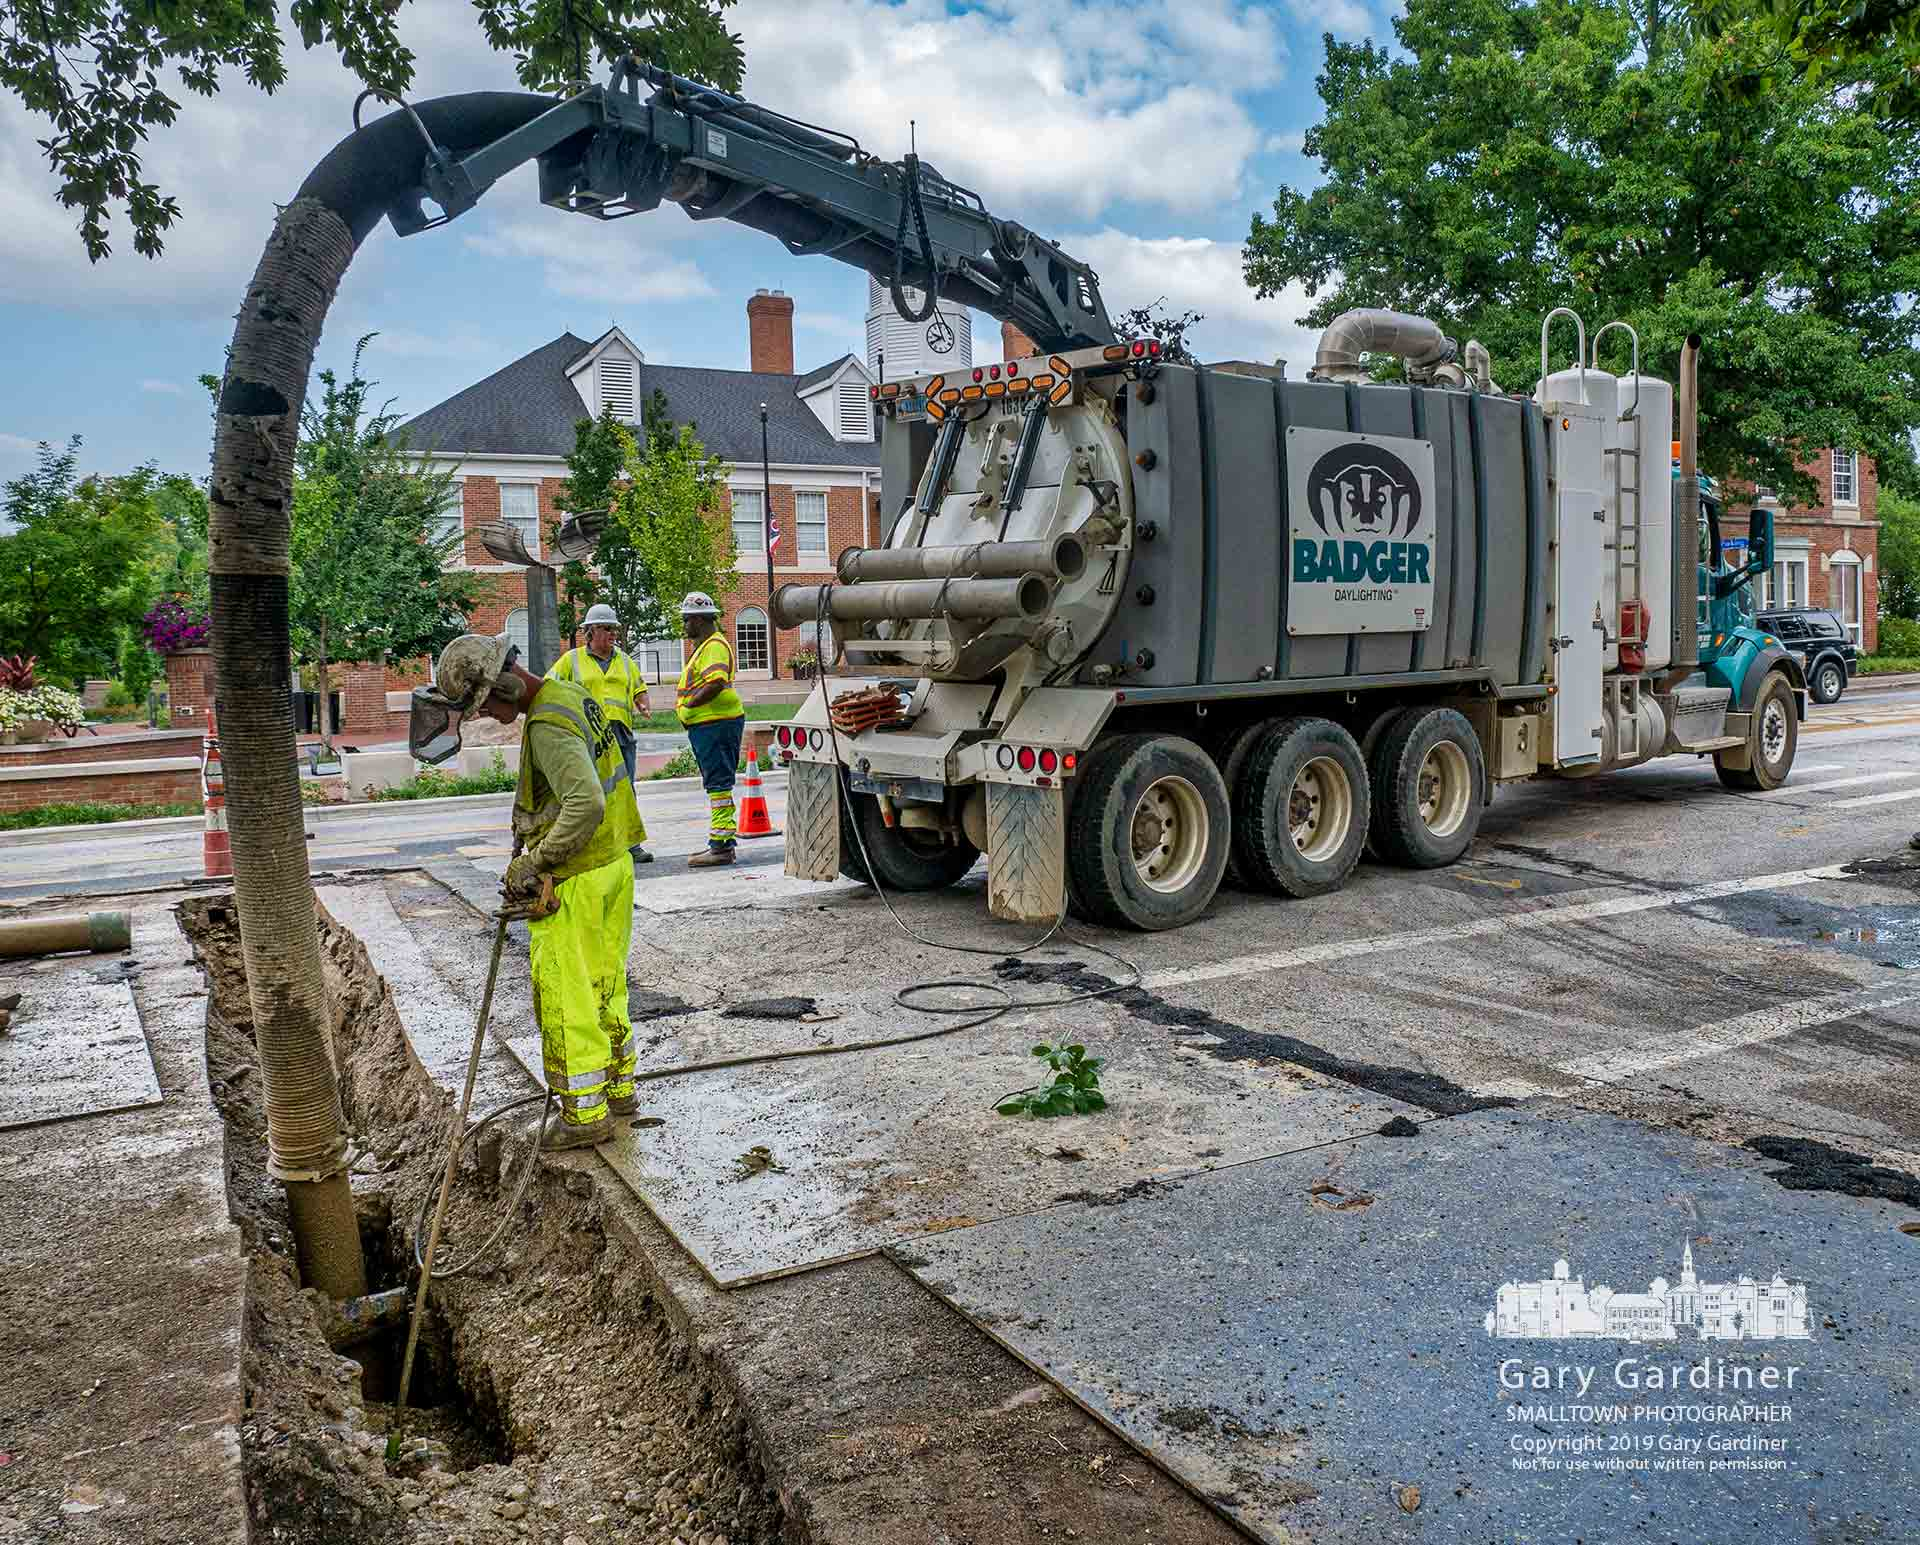 A work crew for Columbia Gas vacuum clears a trench from Winter Street into State Street as the company continues its operations to install higher pressure underground pipeline in Uptown Westerville. My Final Photo for Aug. 7, 2019.